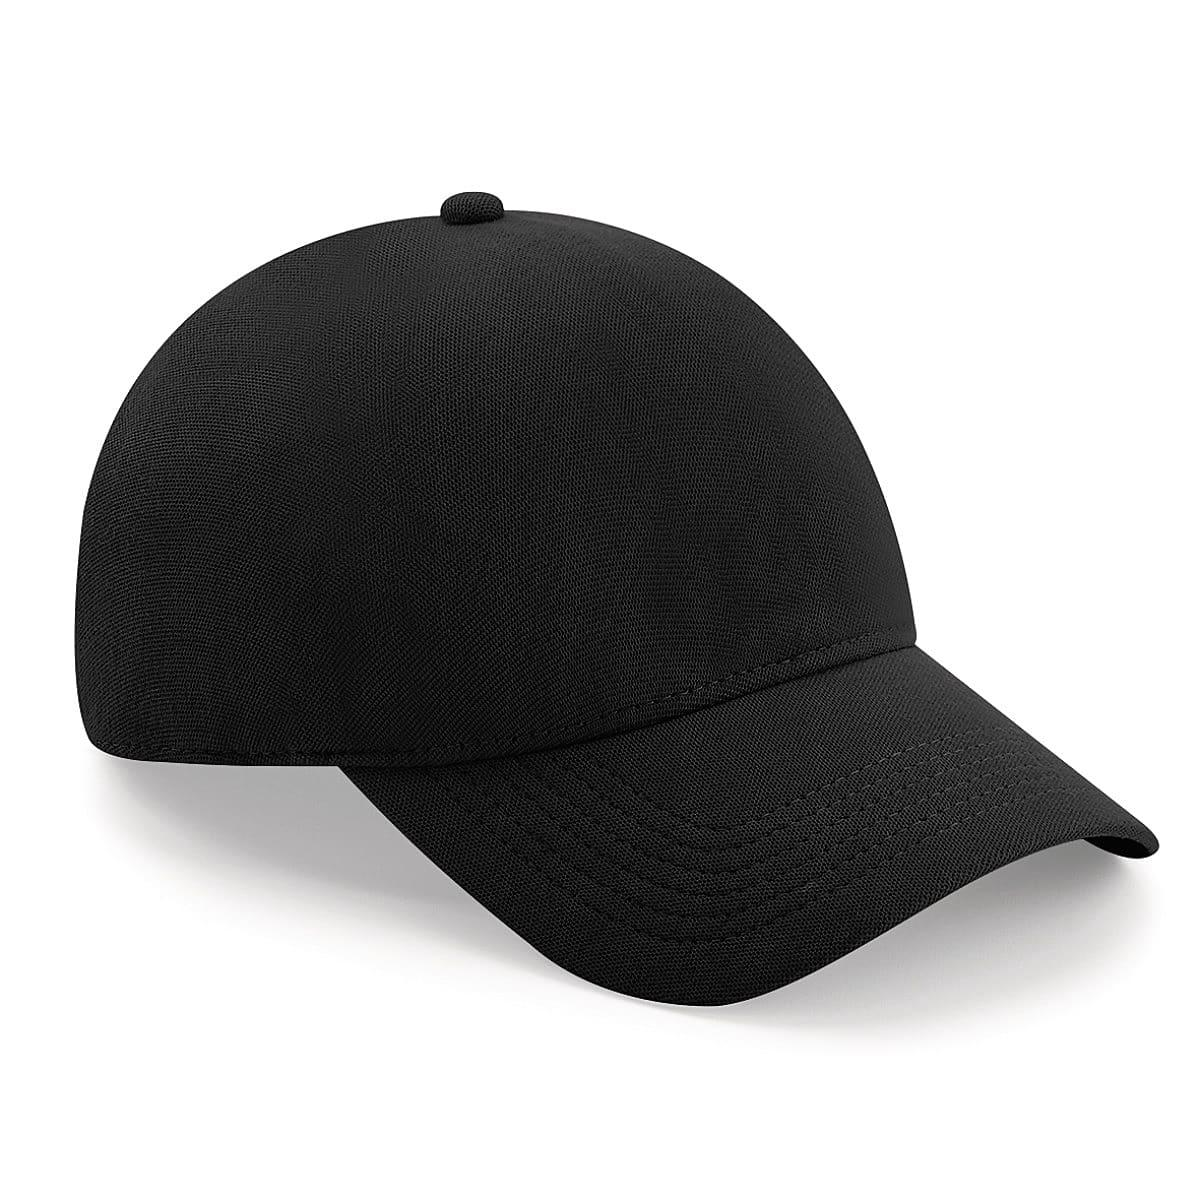 Beechfield Seamless Waterproof Cap in Black (Product Code: B550)